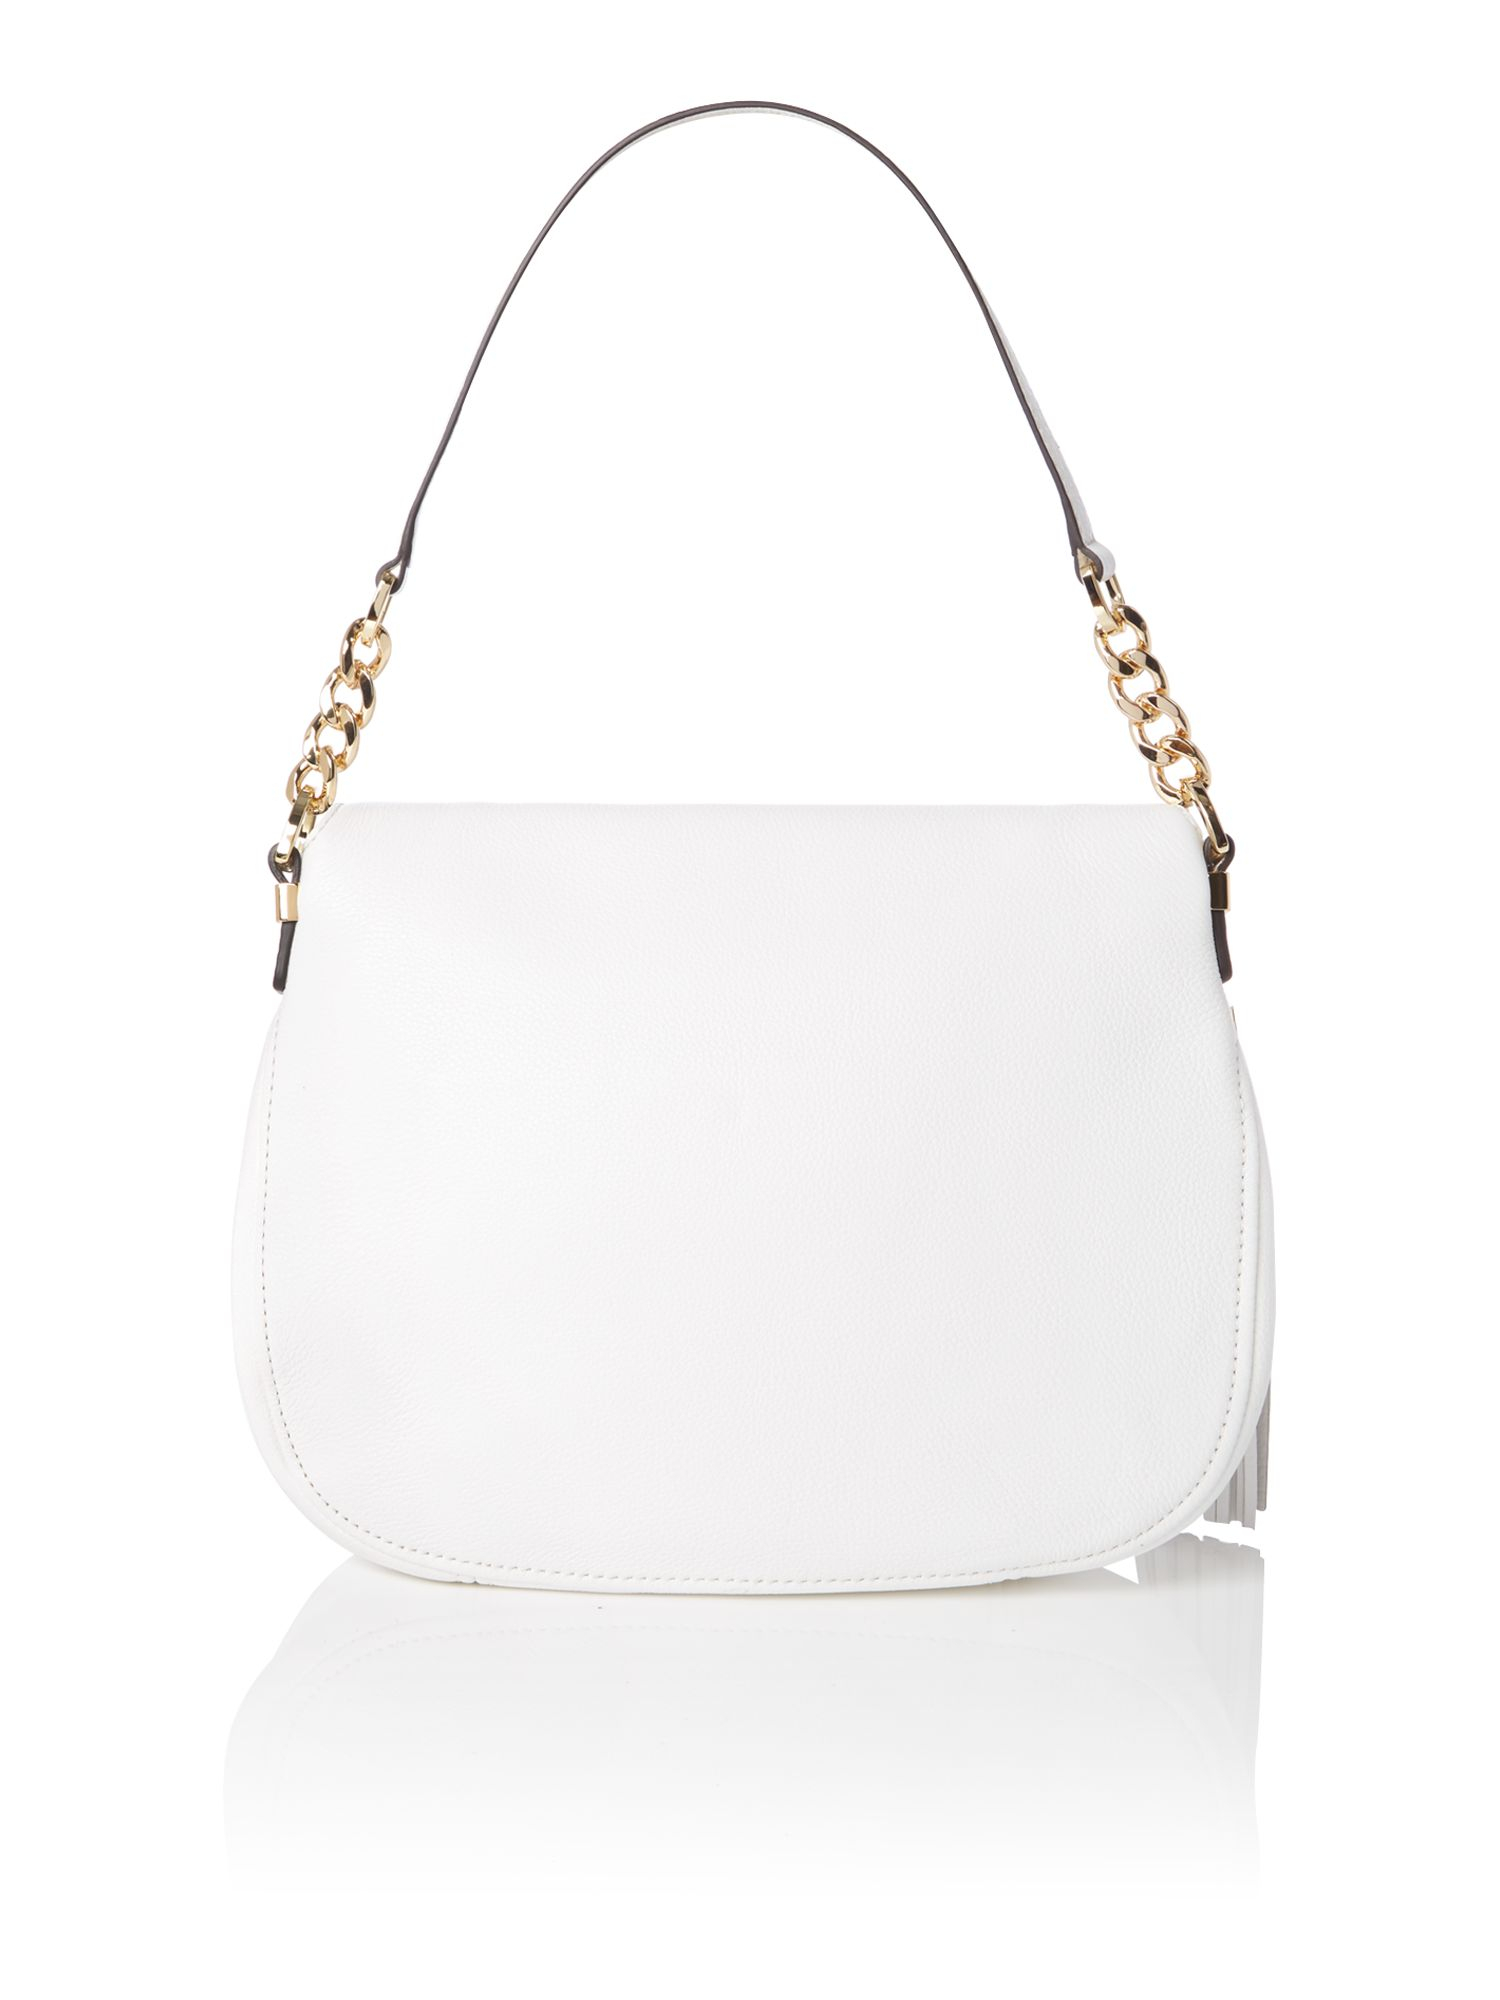 Michael kors Bedford White Flap Over Shoulder Bag in White | Lyst